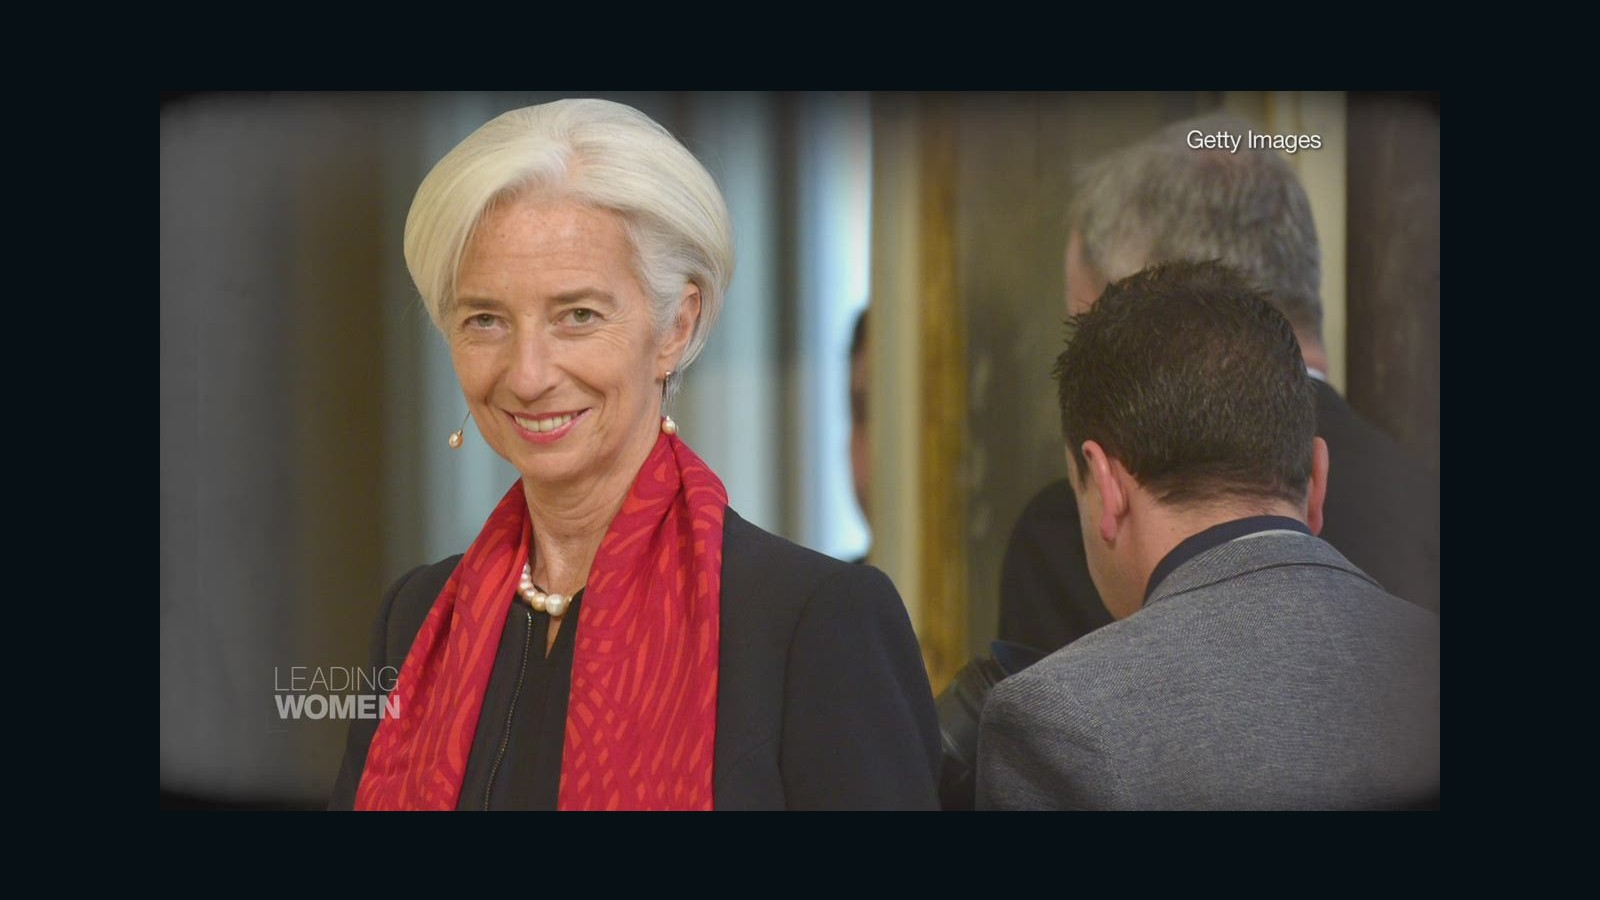 5 things you didn't know about Christine Lagarde - CNN